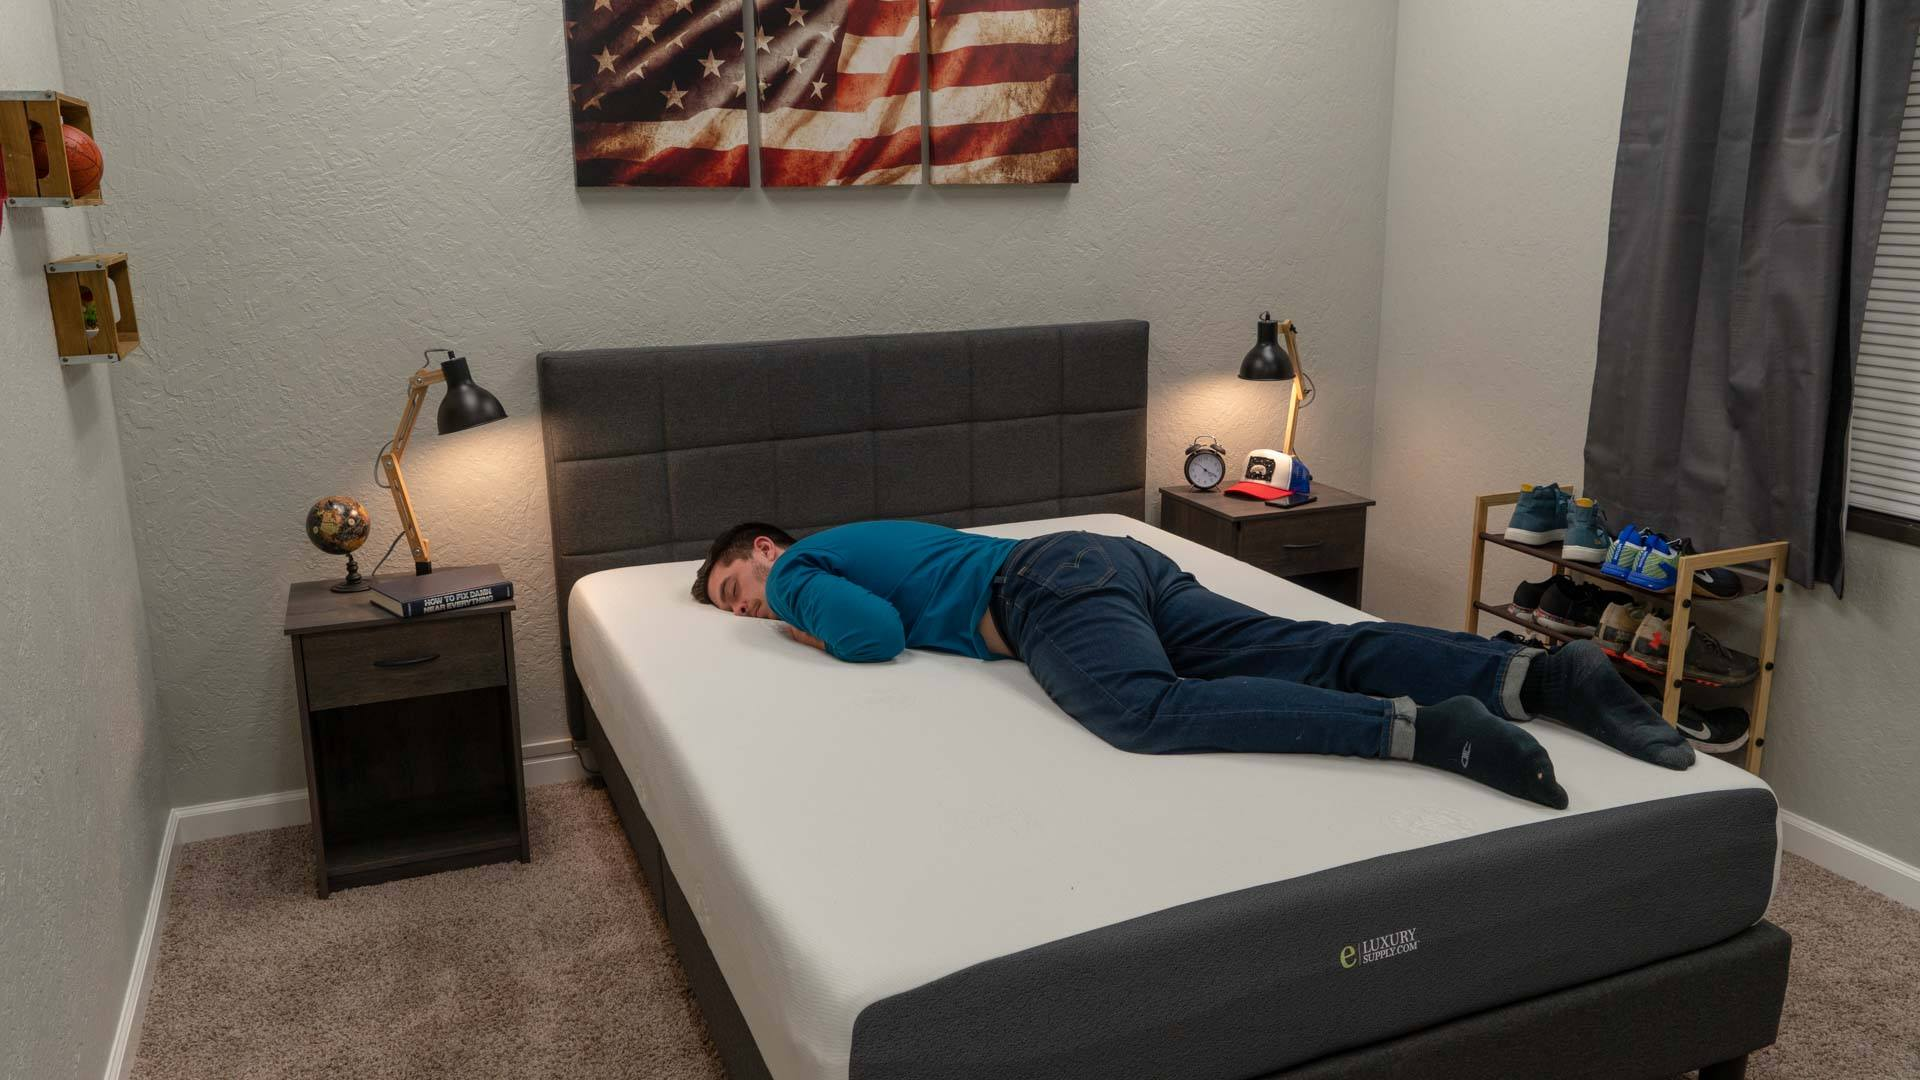 eluxury mattress review stomach sleeper